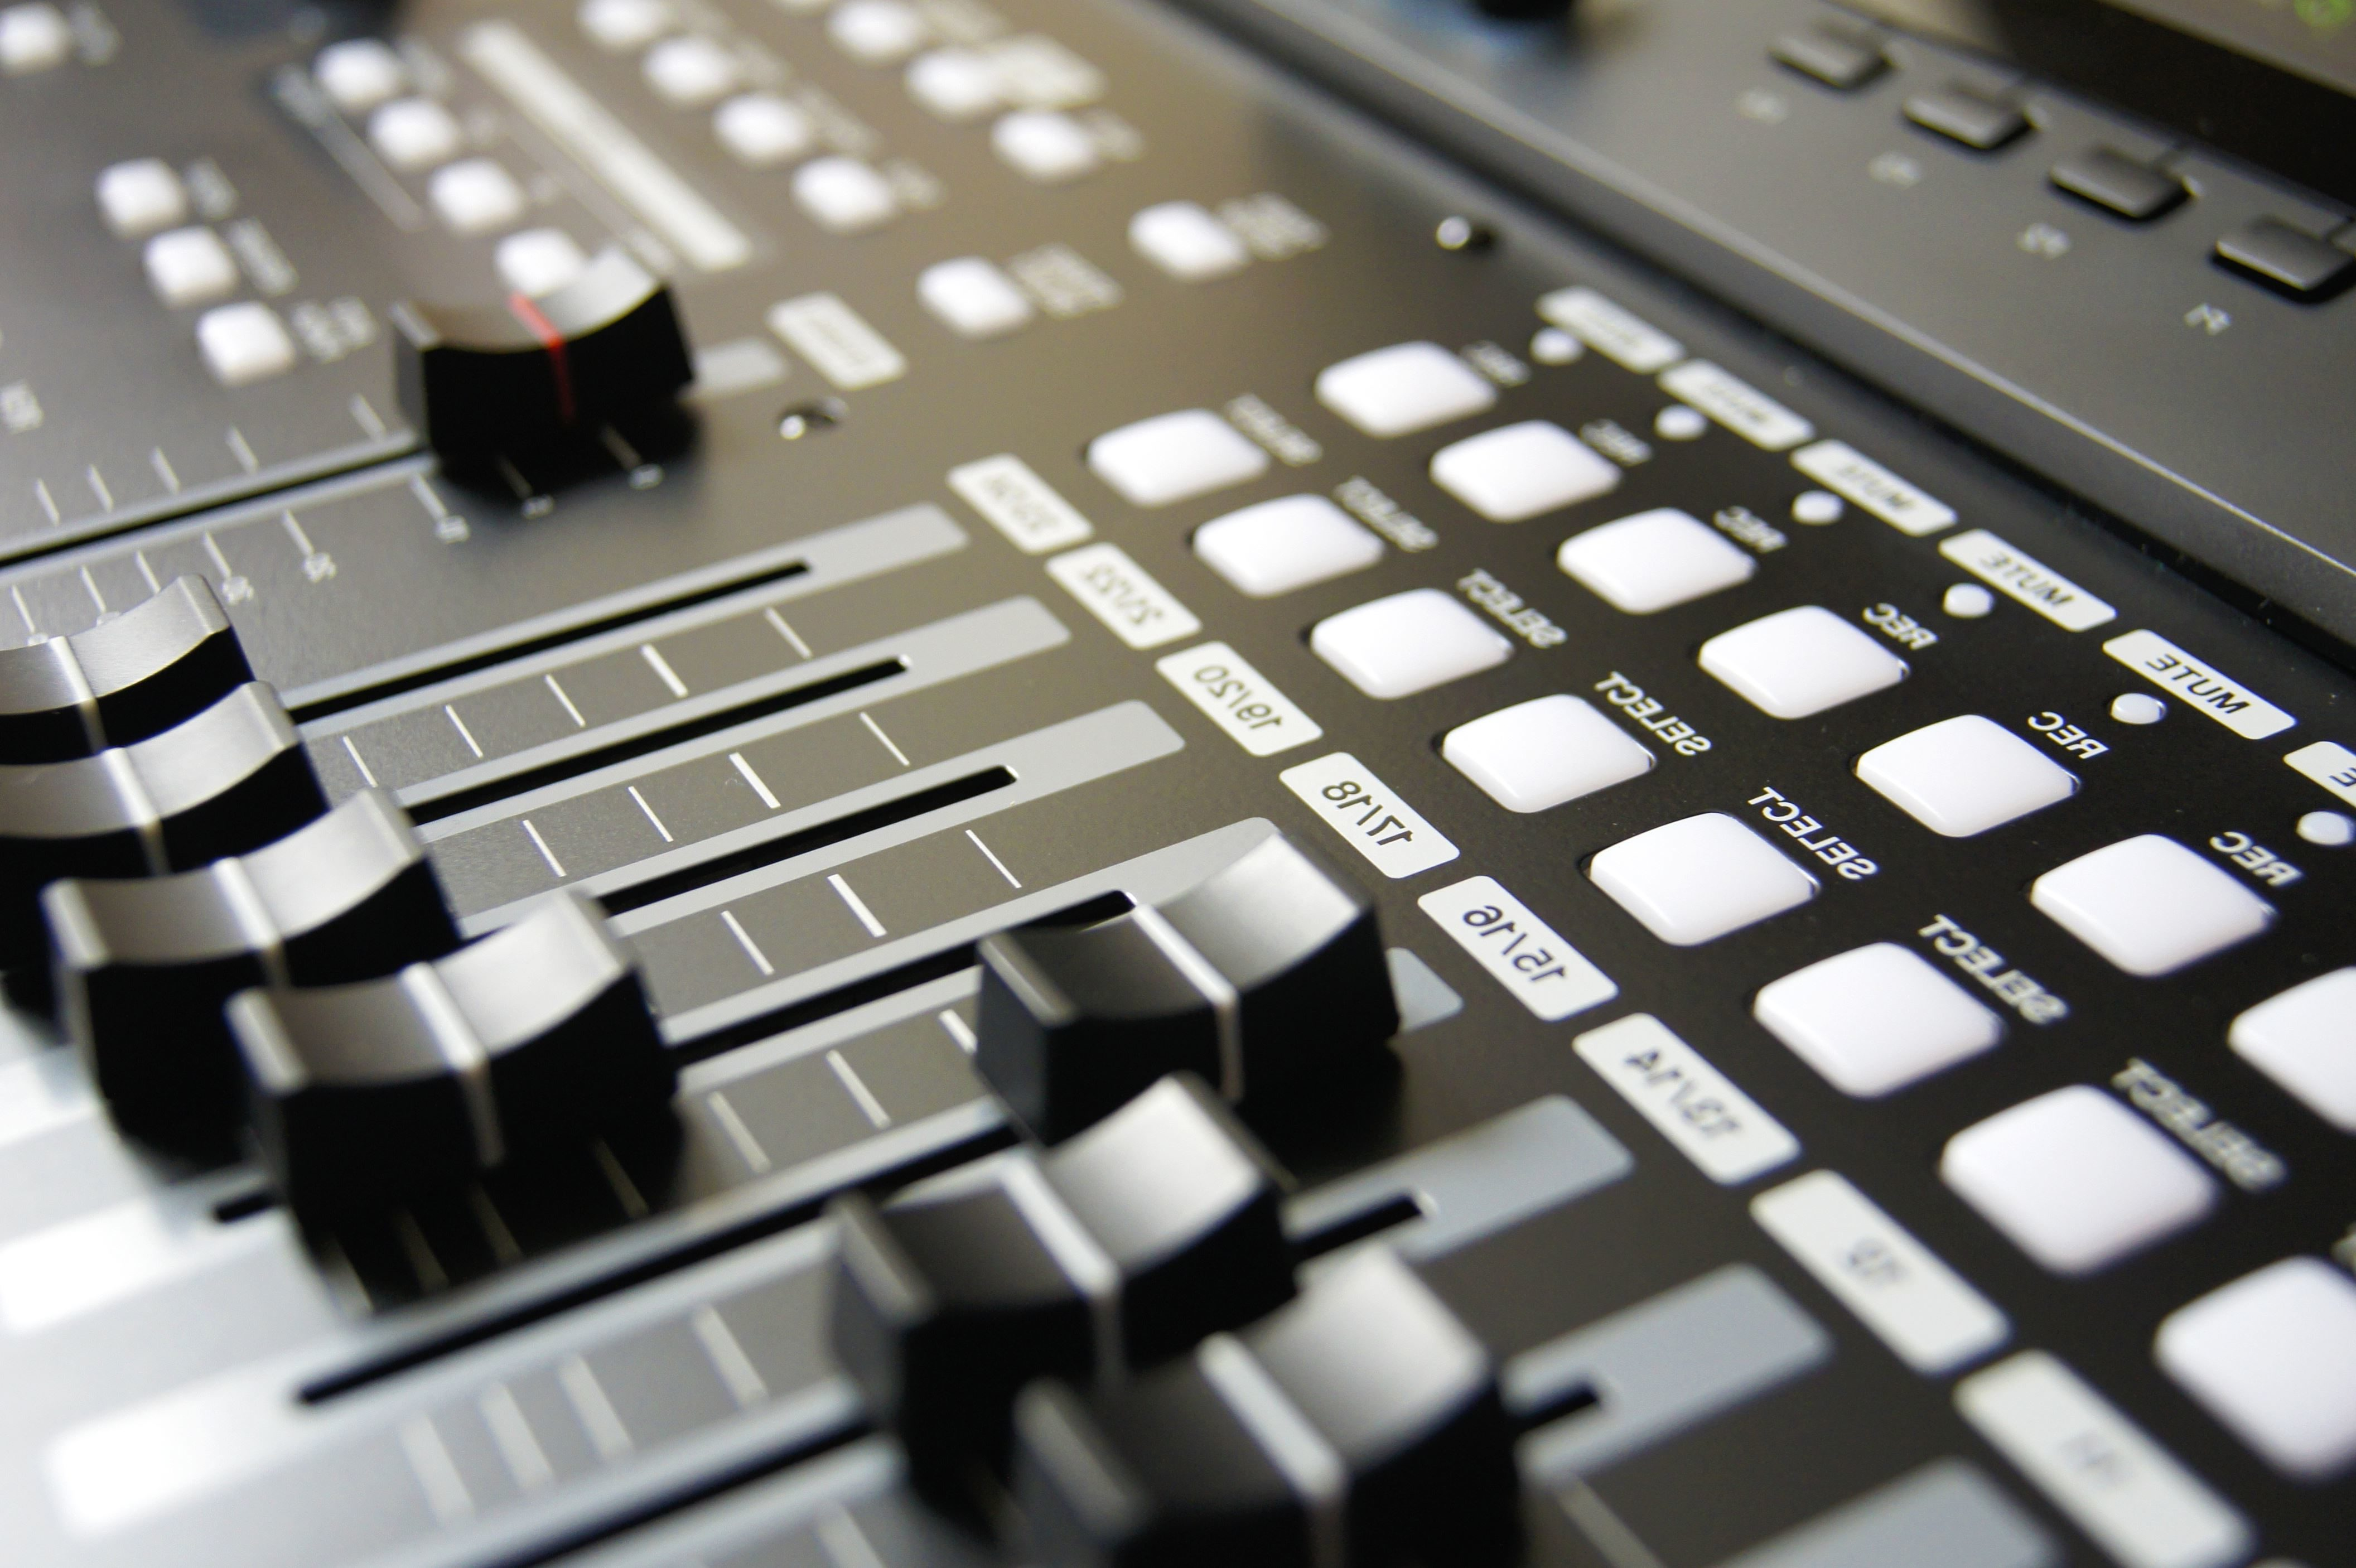 Free picture: disc jockey, music, audio, gadget, buttons, electronics, sound